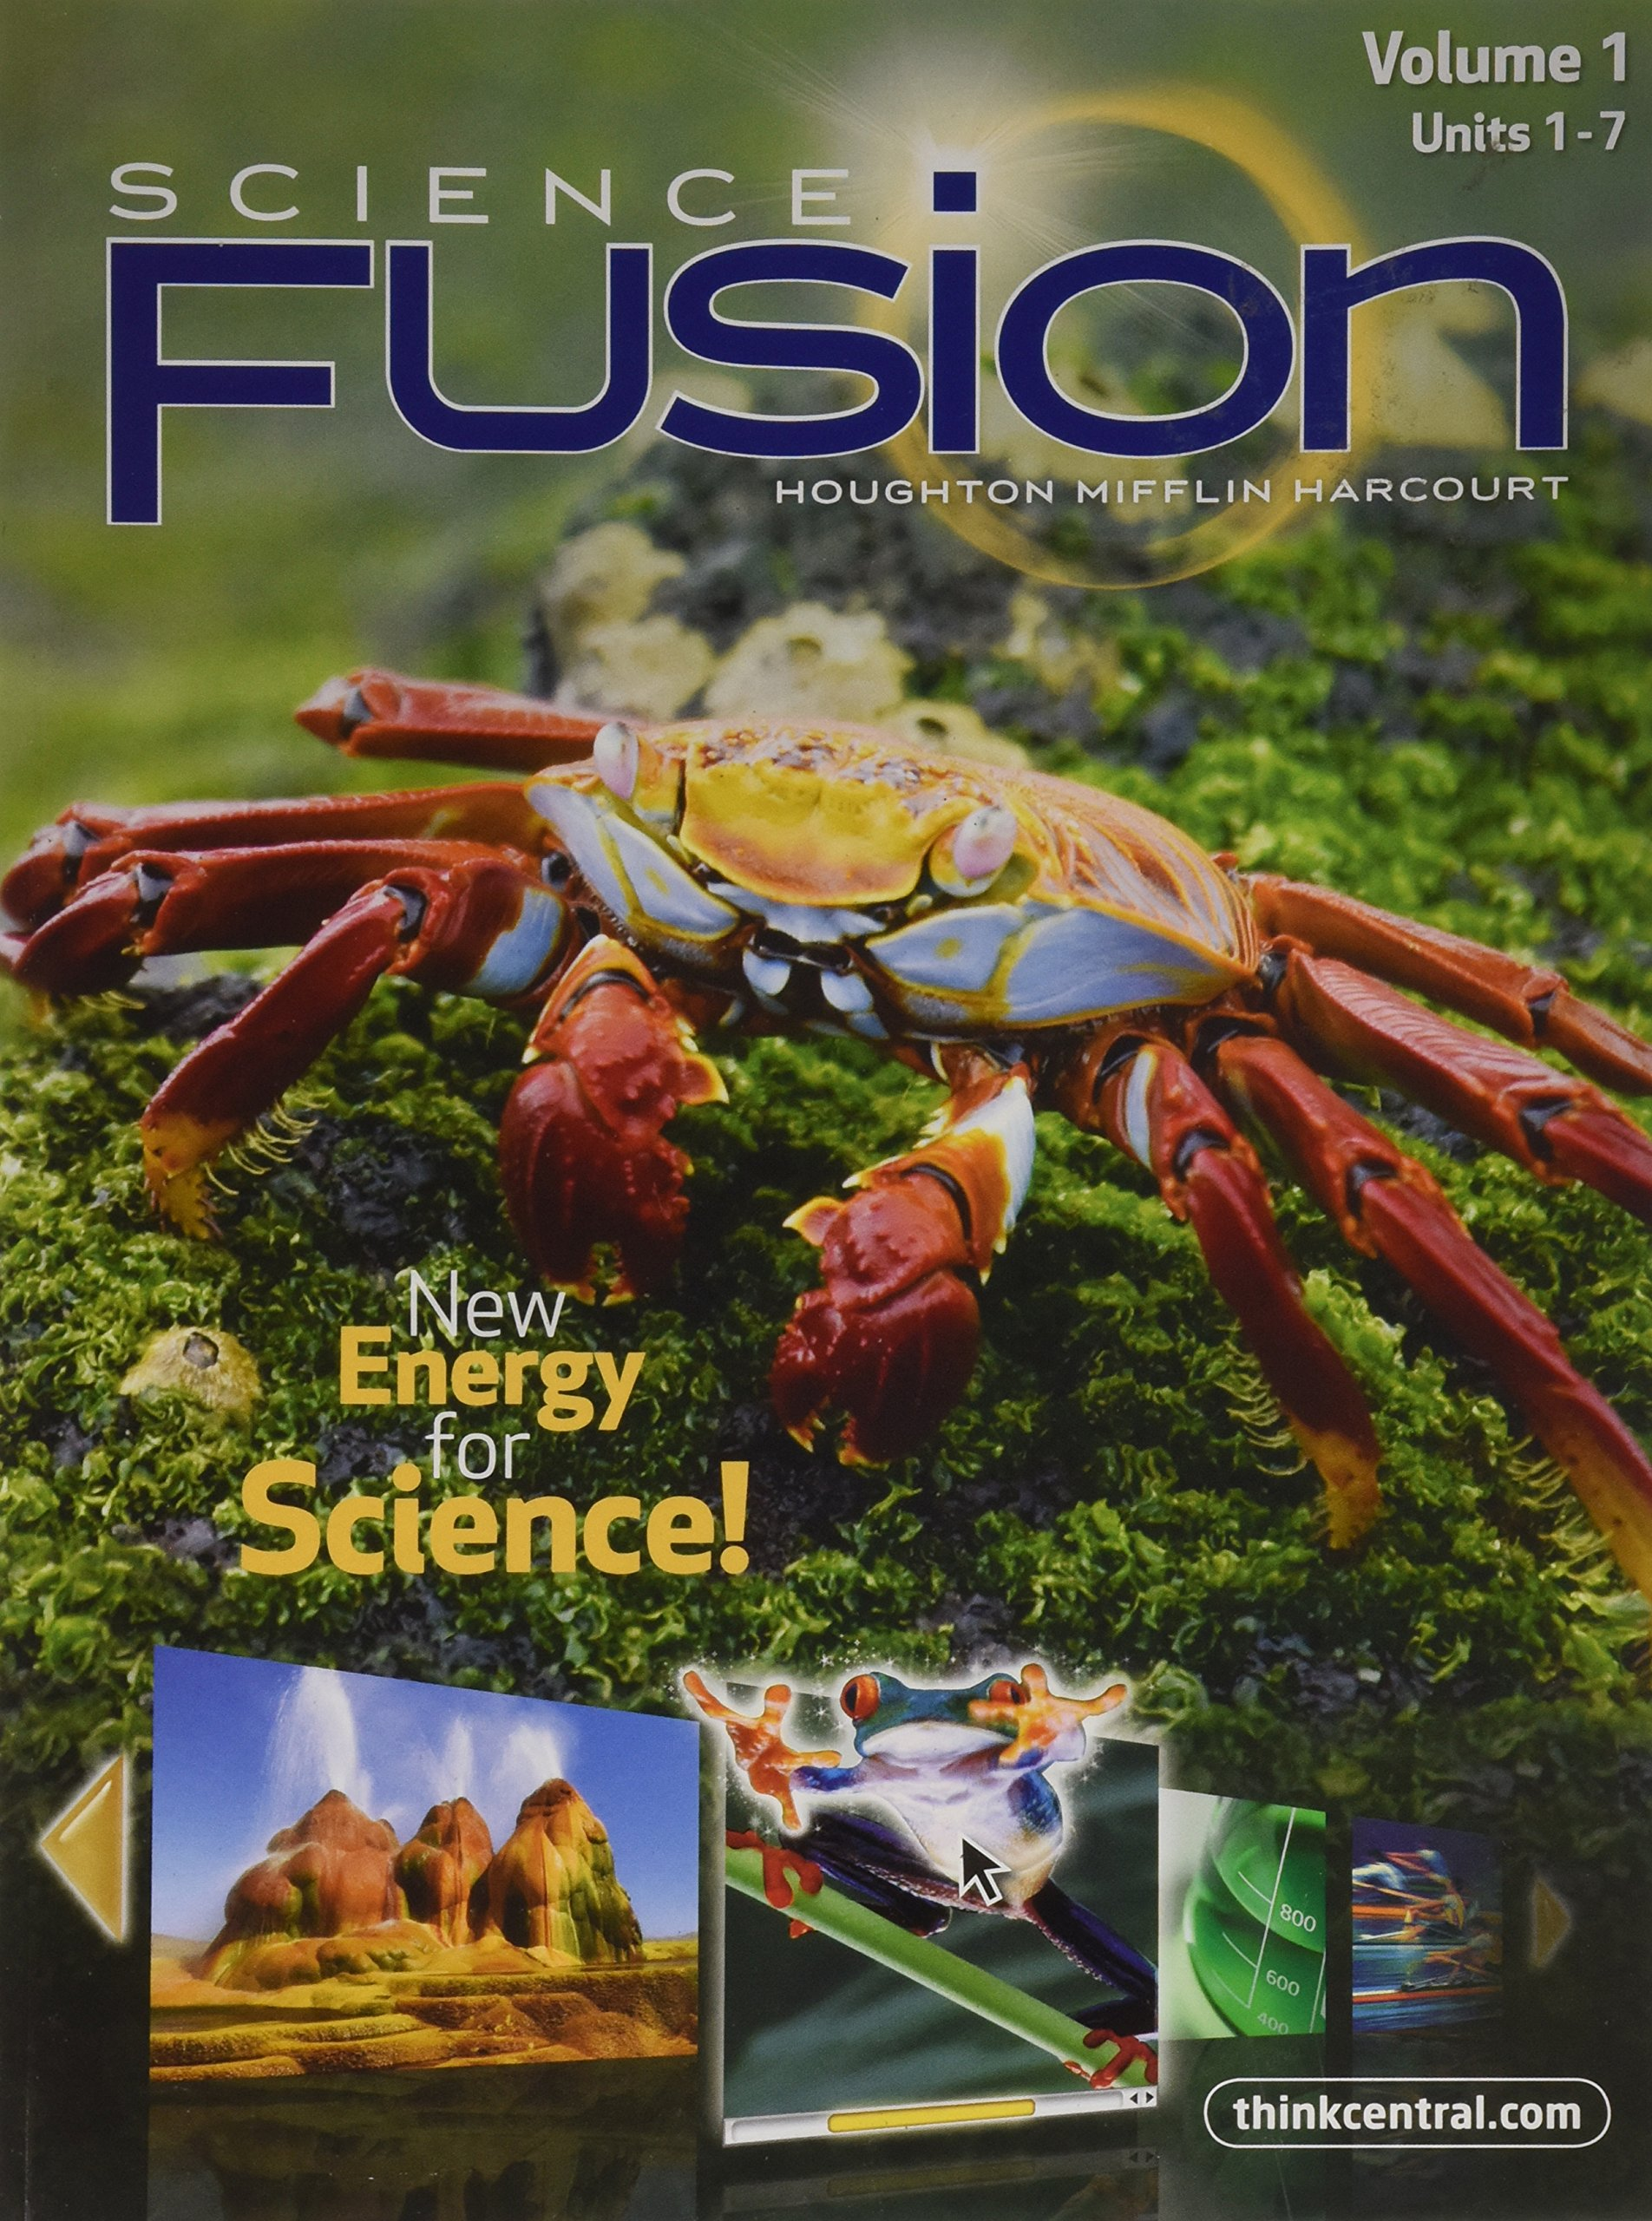 Science fusion volume 1 units 1 7 gr 5 houghton mifflin harcourt science fusion volume 1 units 1 7 gr 5 houghton mifflin harcourt 9780547719368 amazon books ccuart Gallery